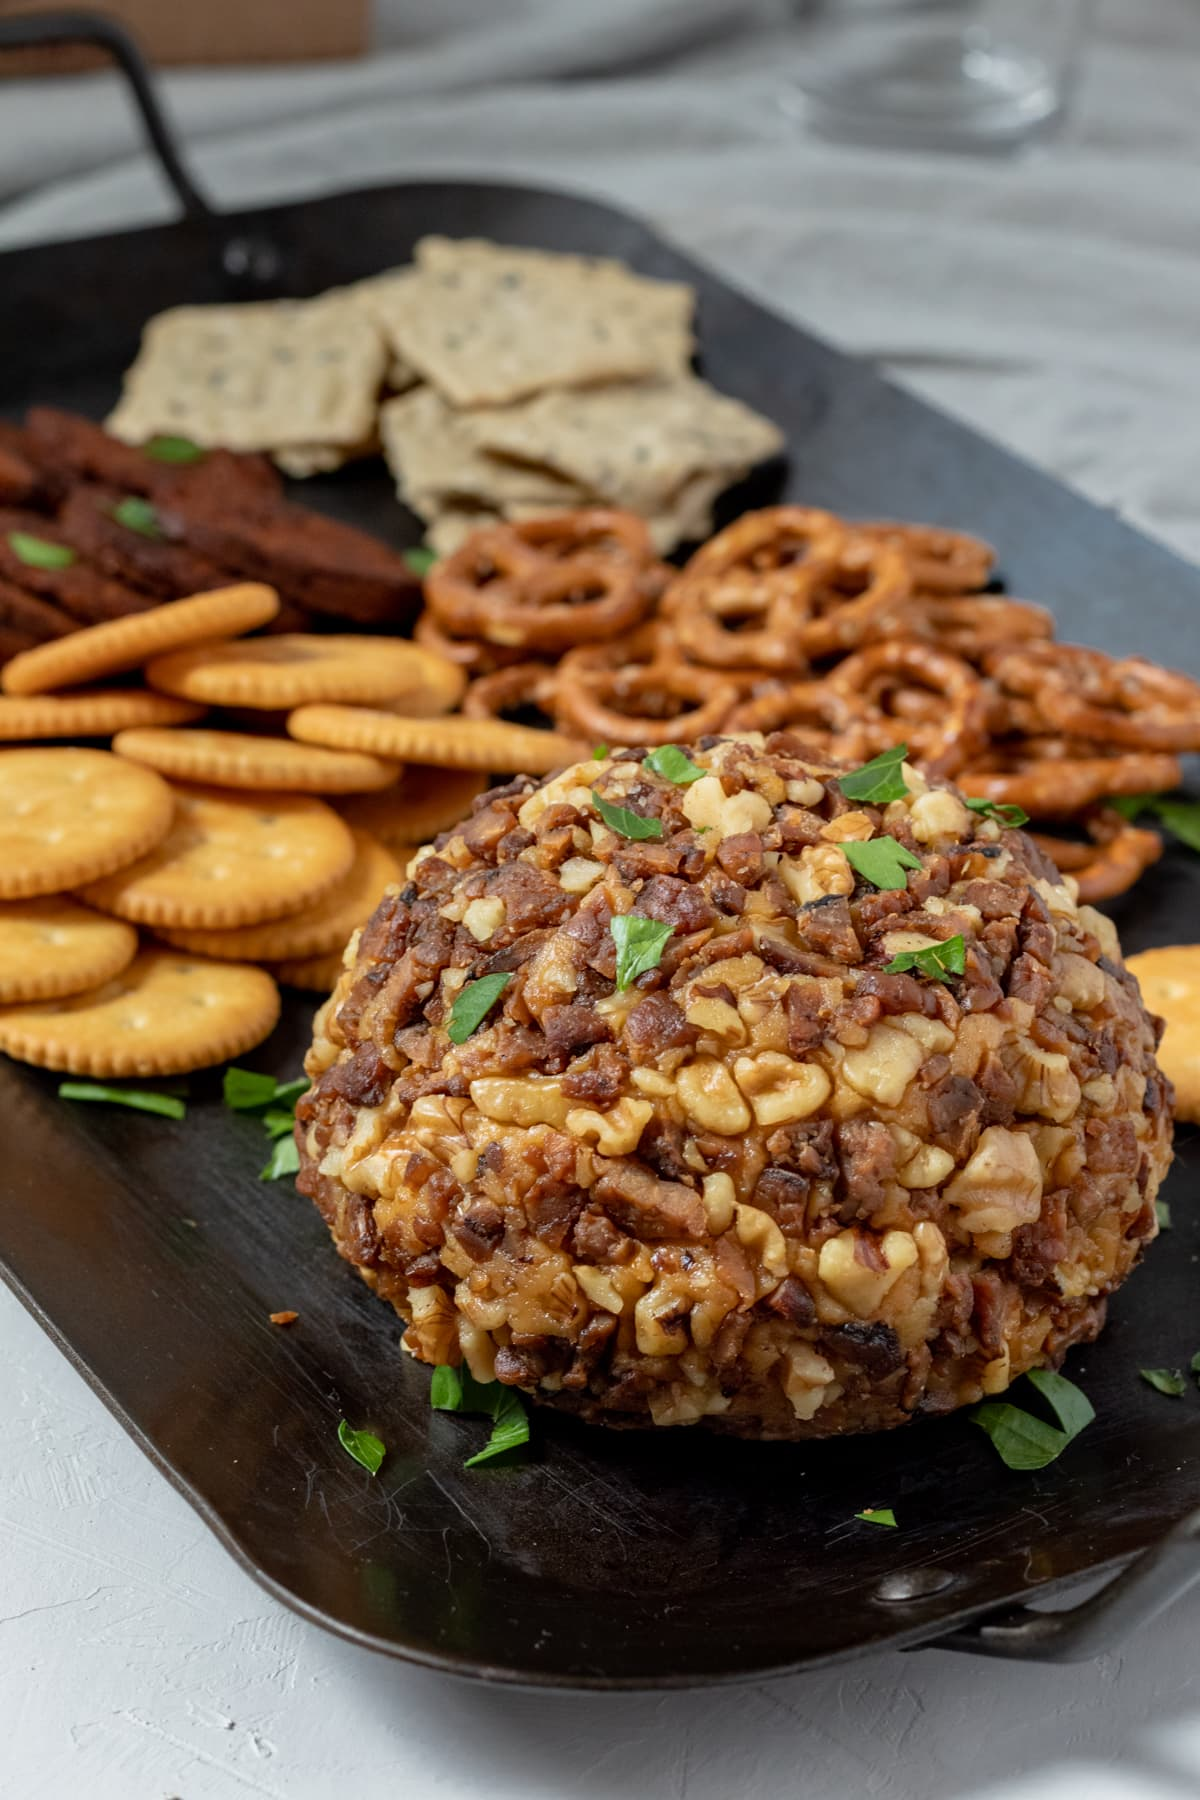 cashew cheese ball coated with vegan tempeh bacon and walnuts sitting on a platter